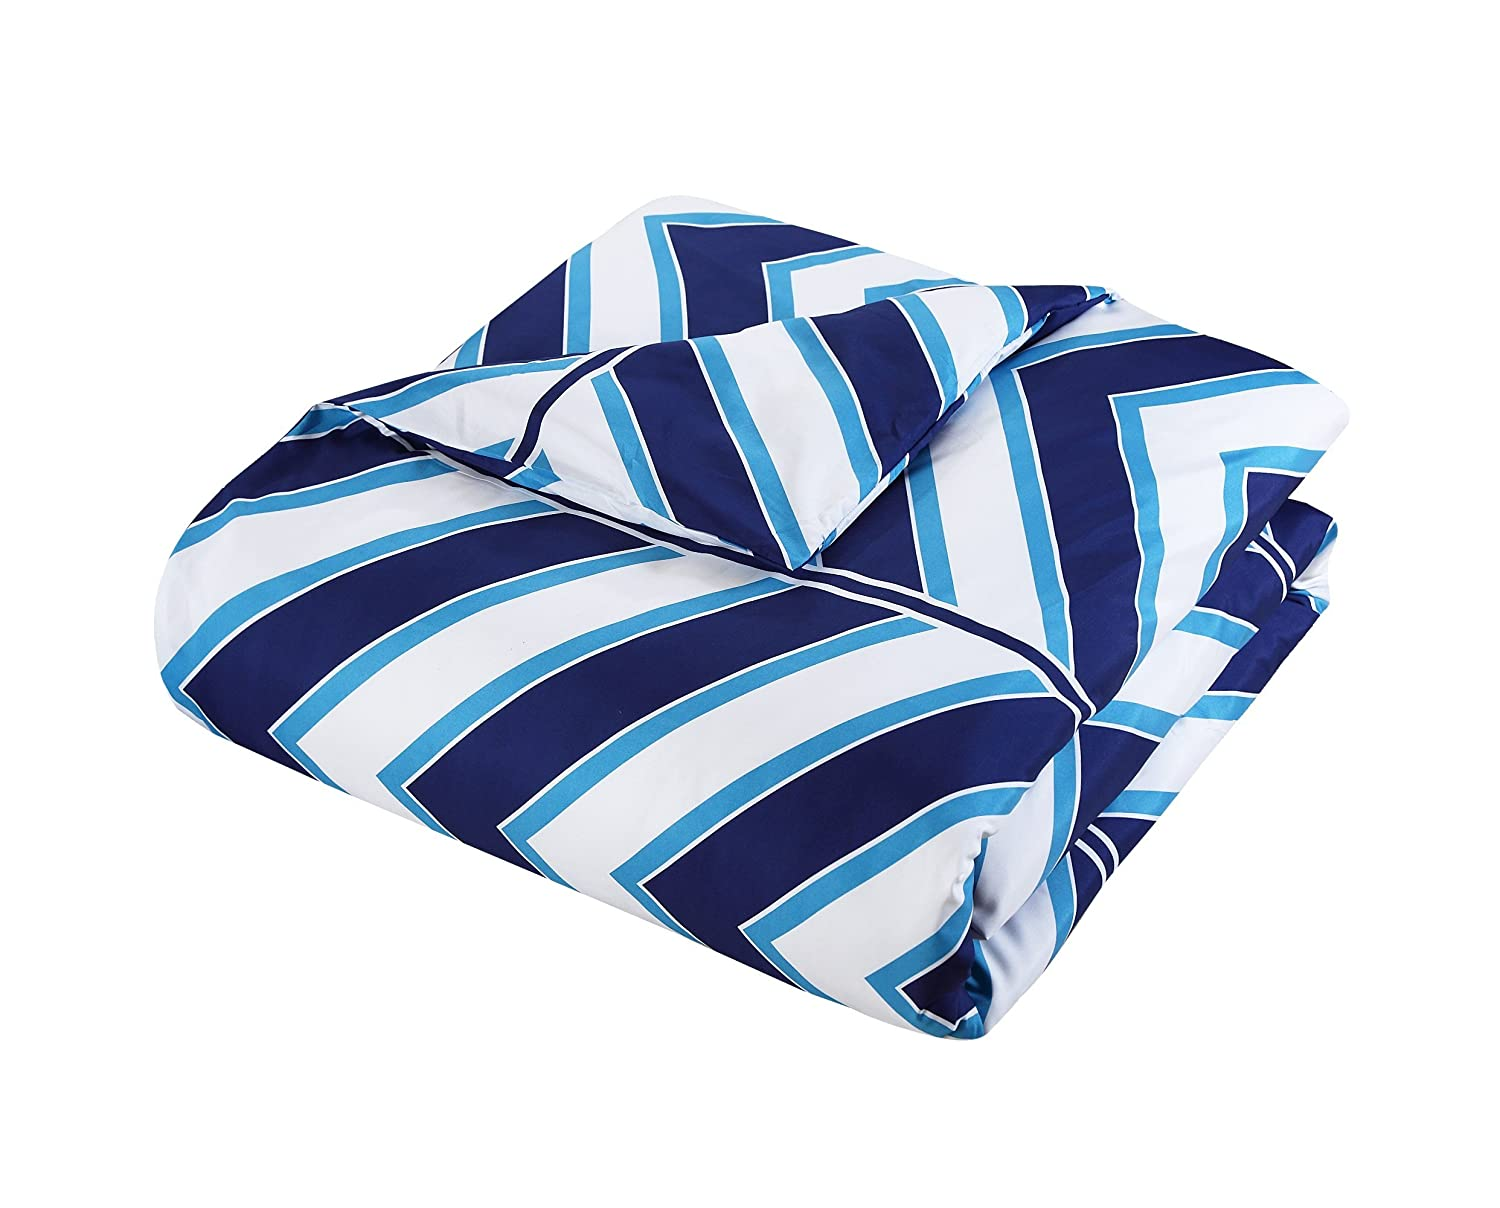 Chic Home CS1624 10 Piece Surfer Chevron and Geometric Printed Reversible Queen Bed in a Bag Comforter Navy Sheets Set and Deocrative Pillows Included CS1624-AN